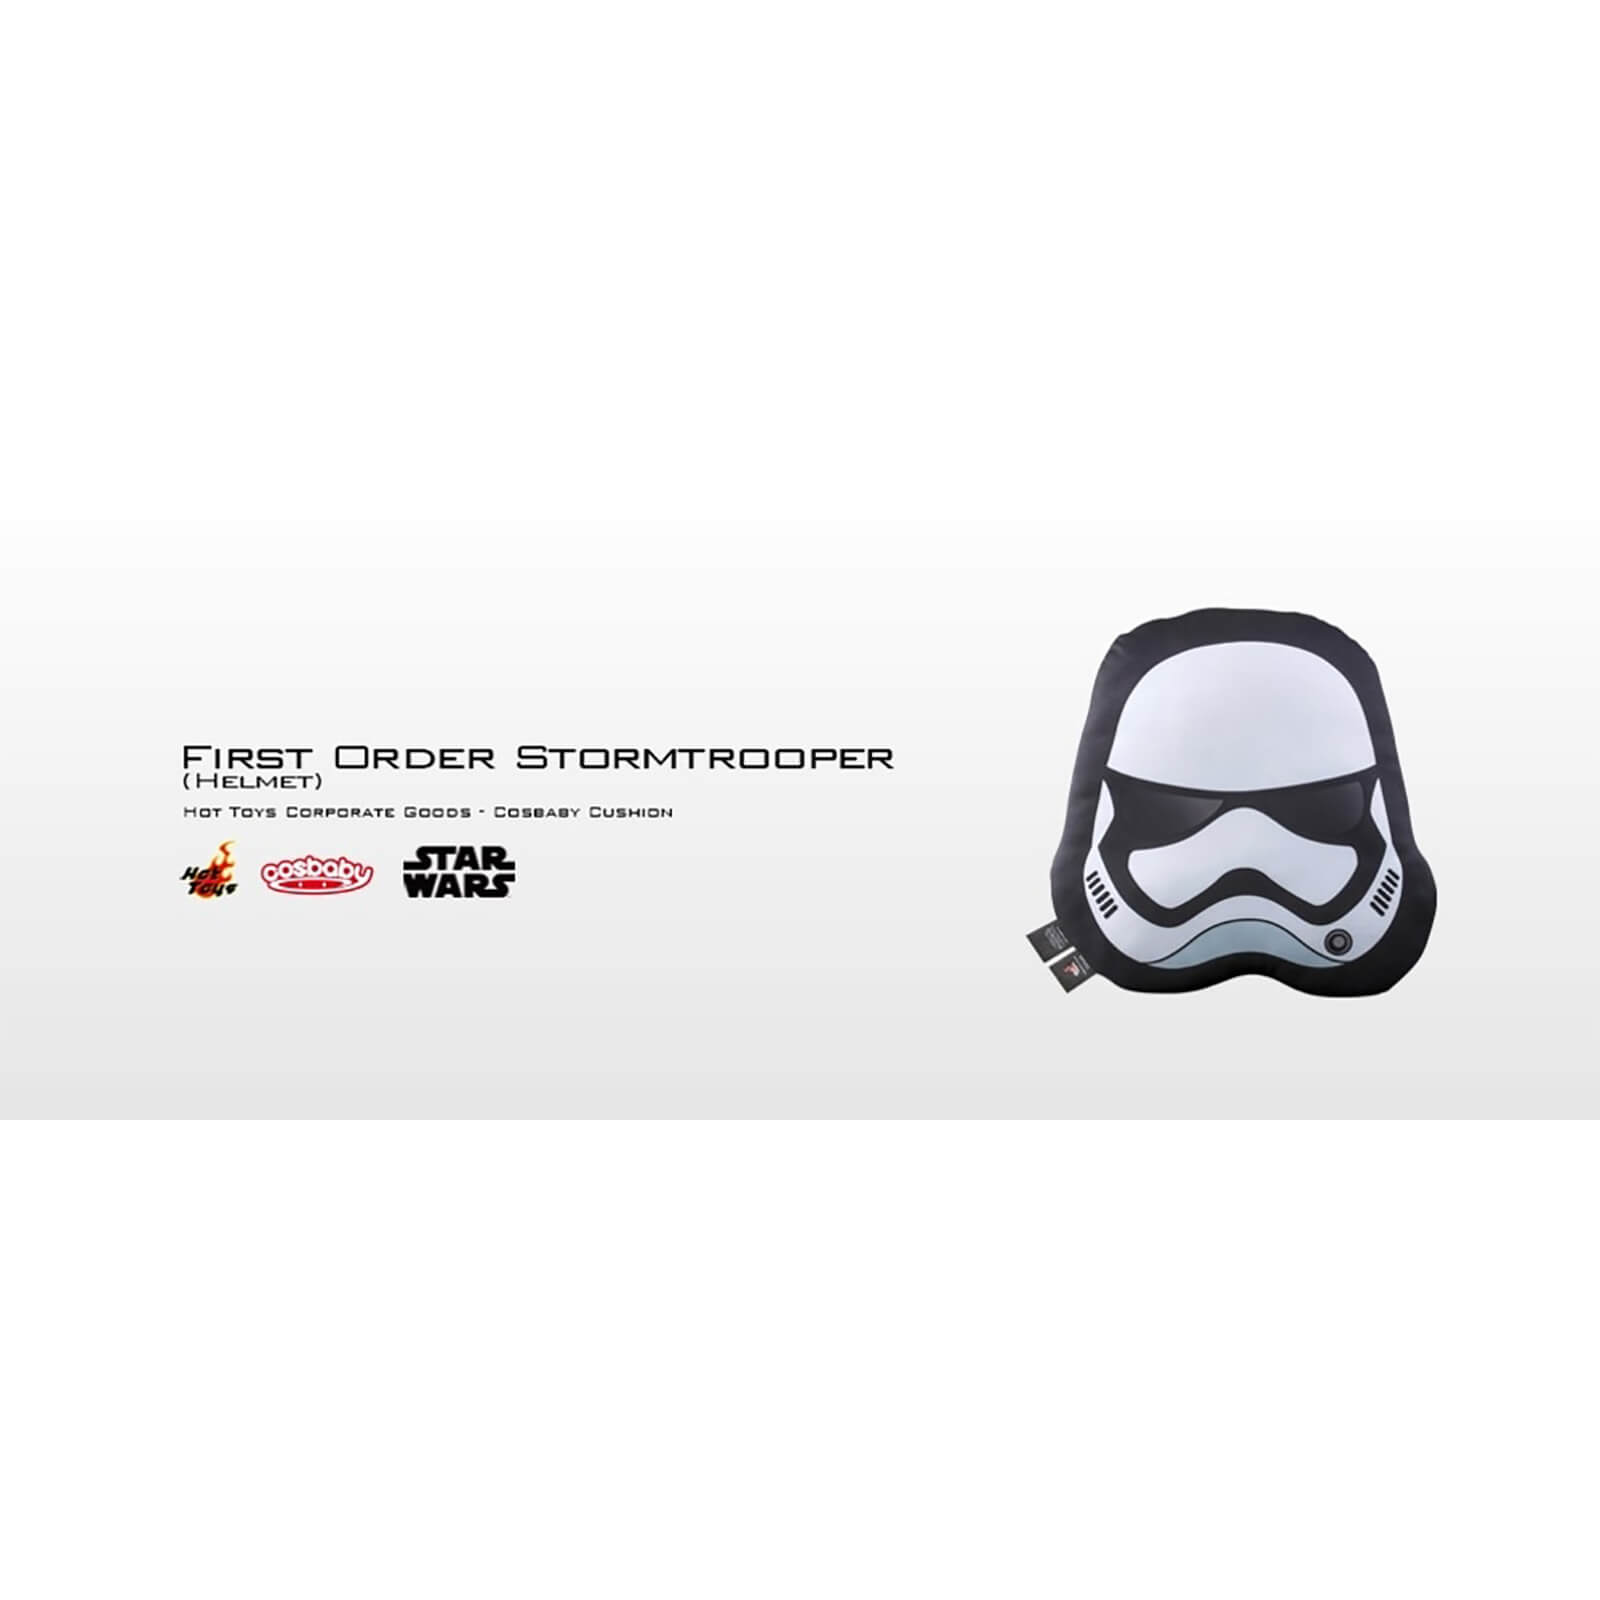 Hot Toys Cosbaby Star Wars Cushion - TFA First Order Stormtrooper